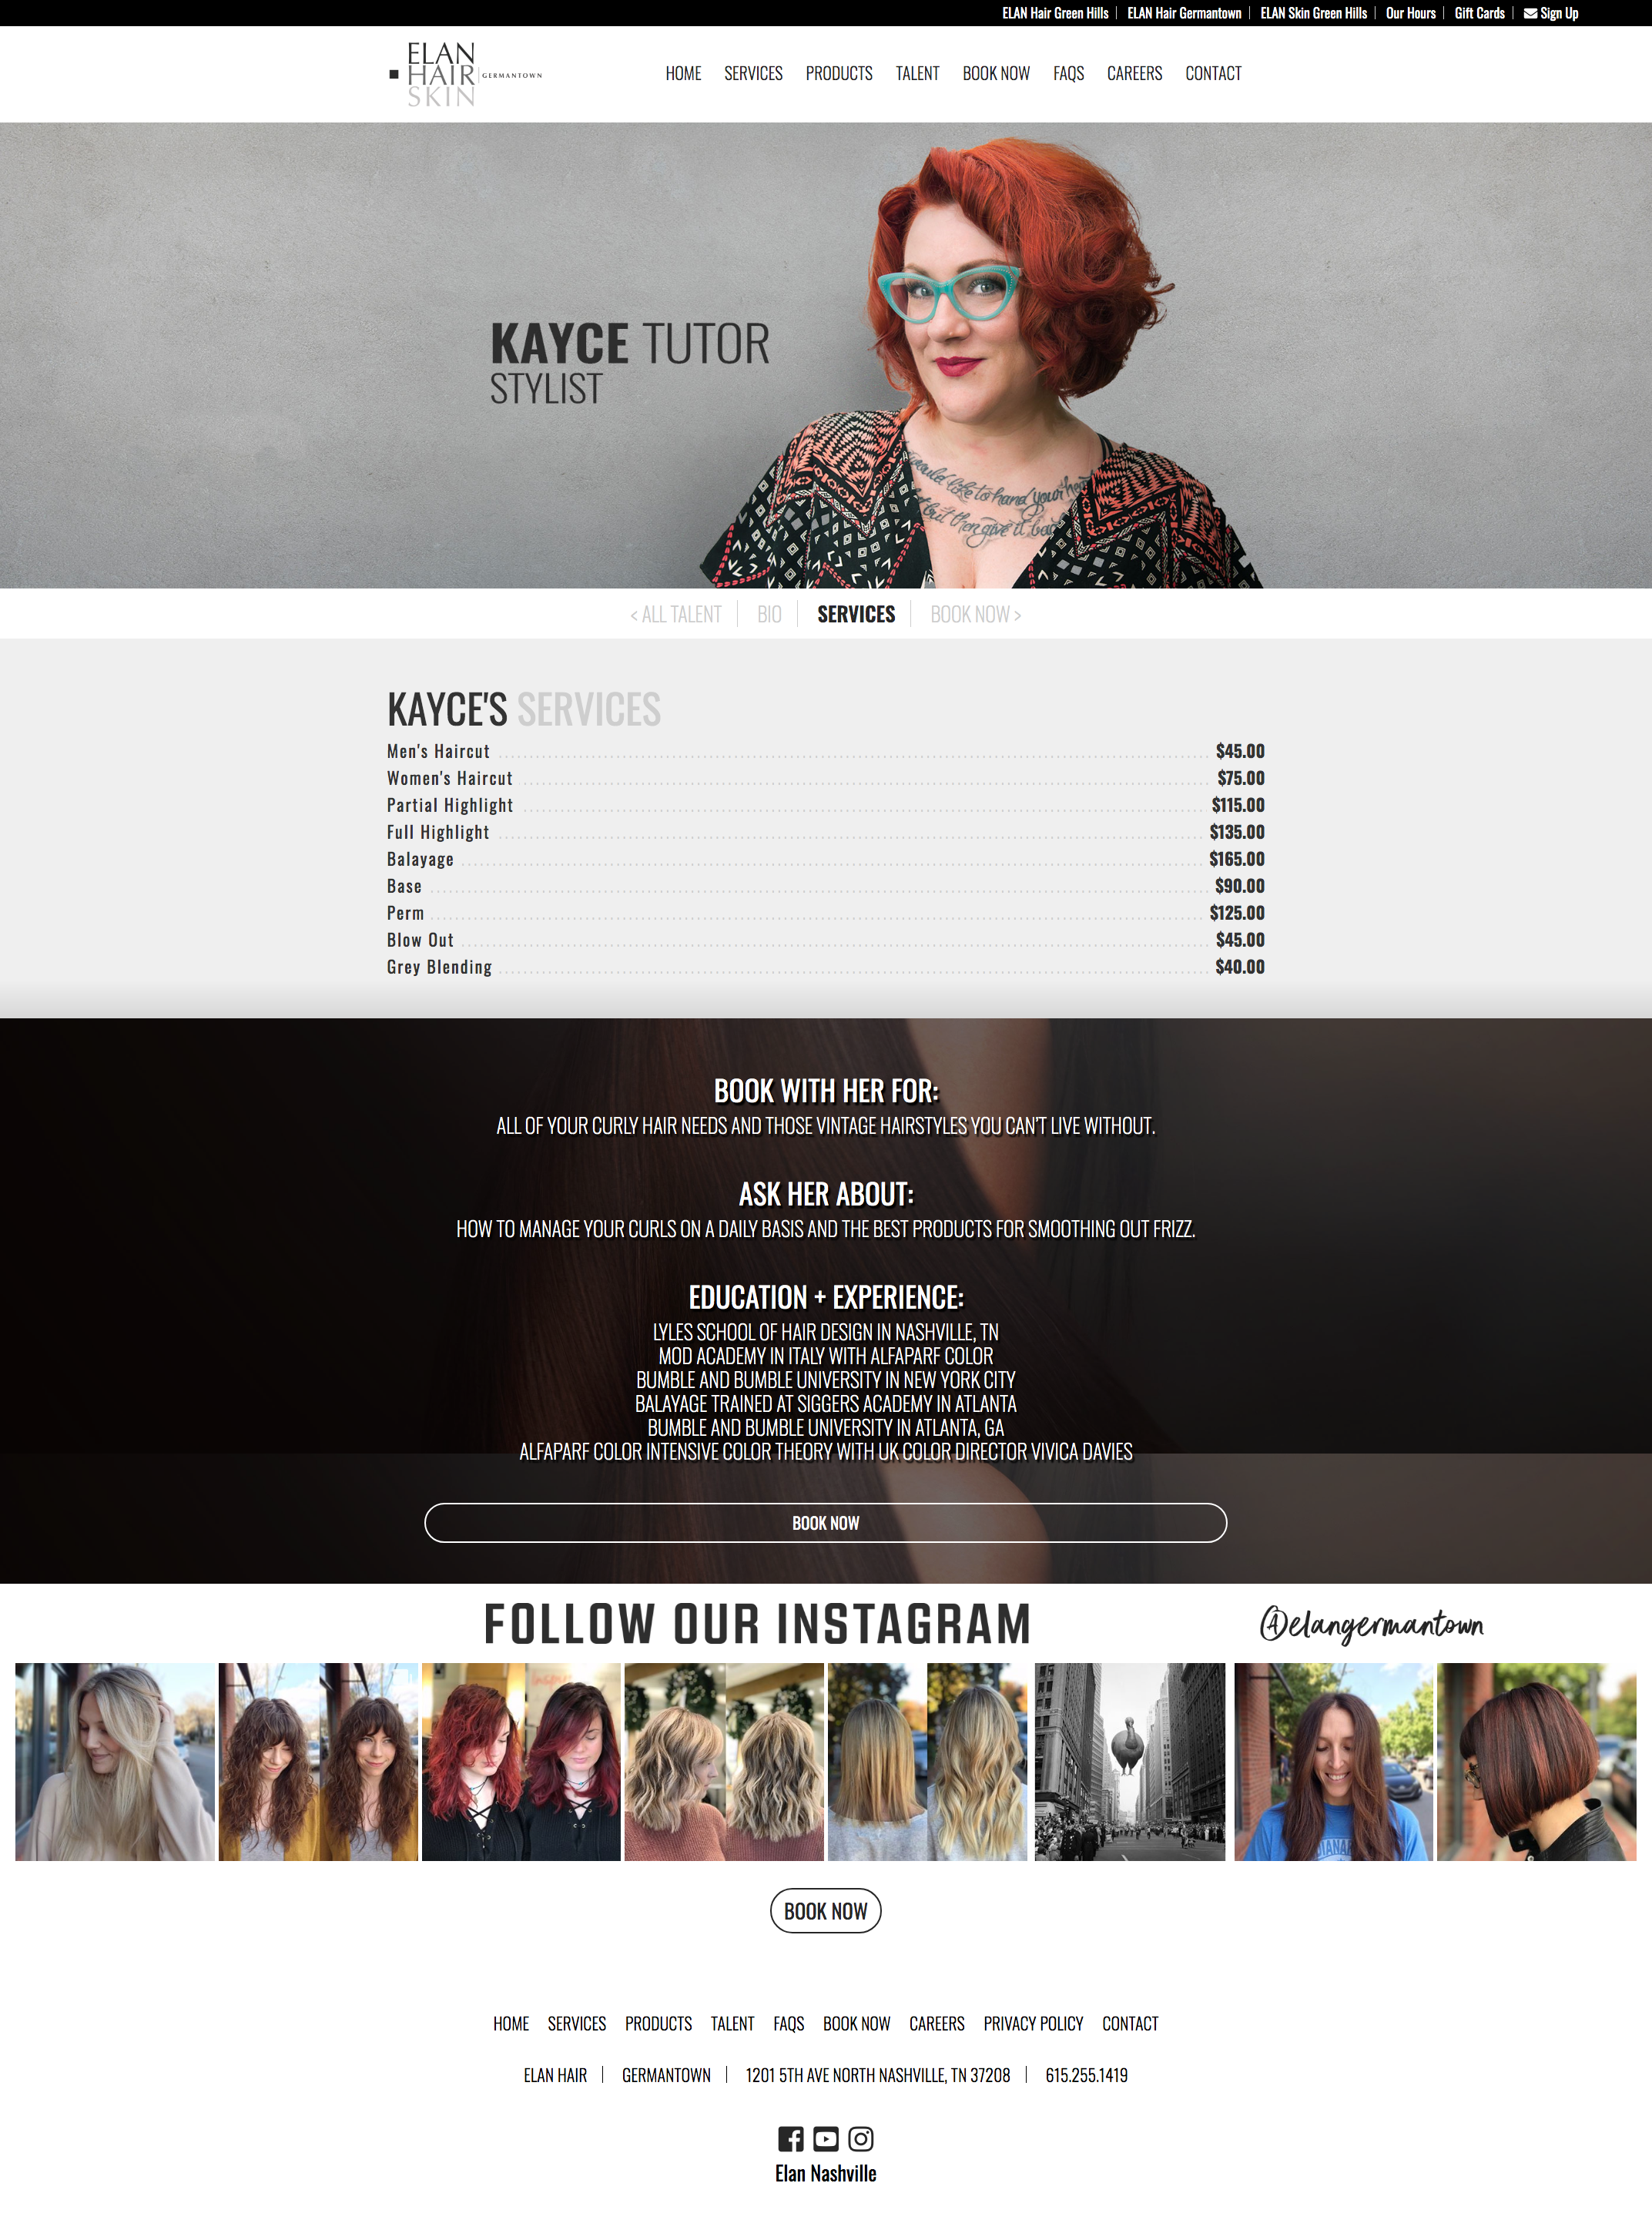 Employee Profile Page of Website